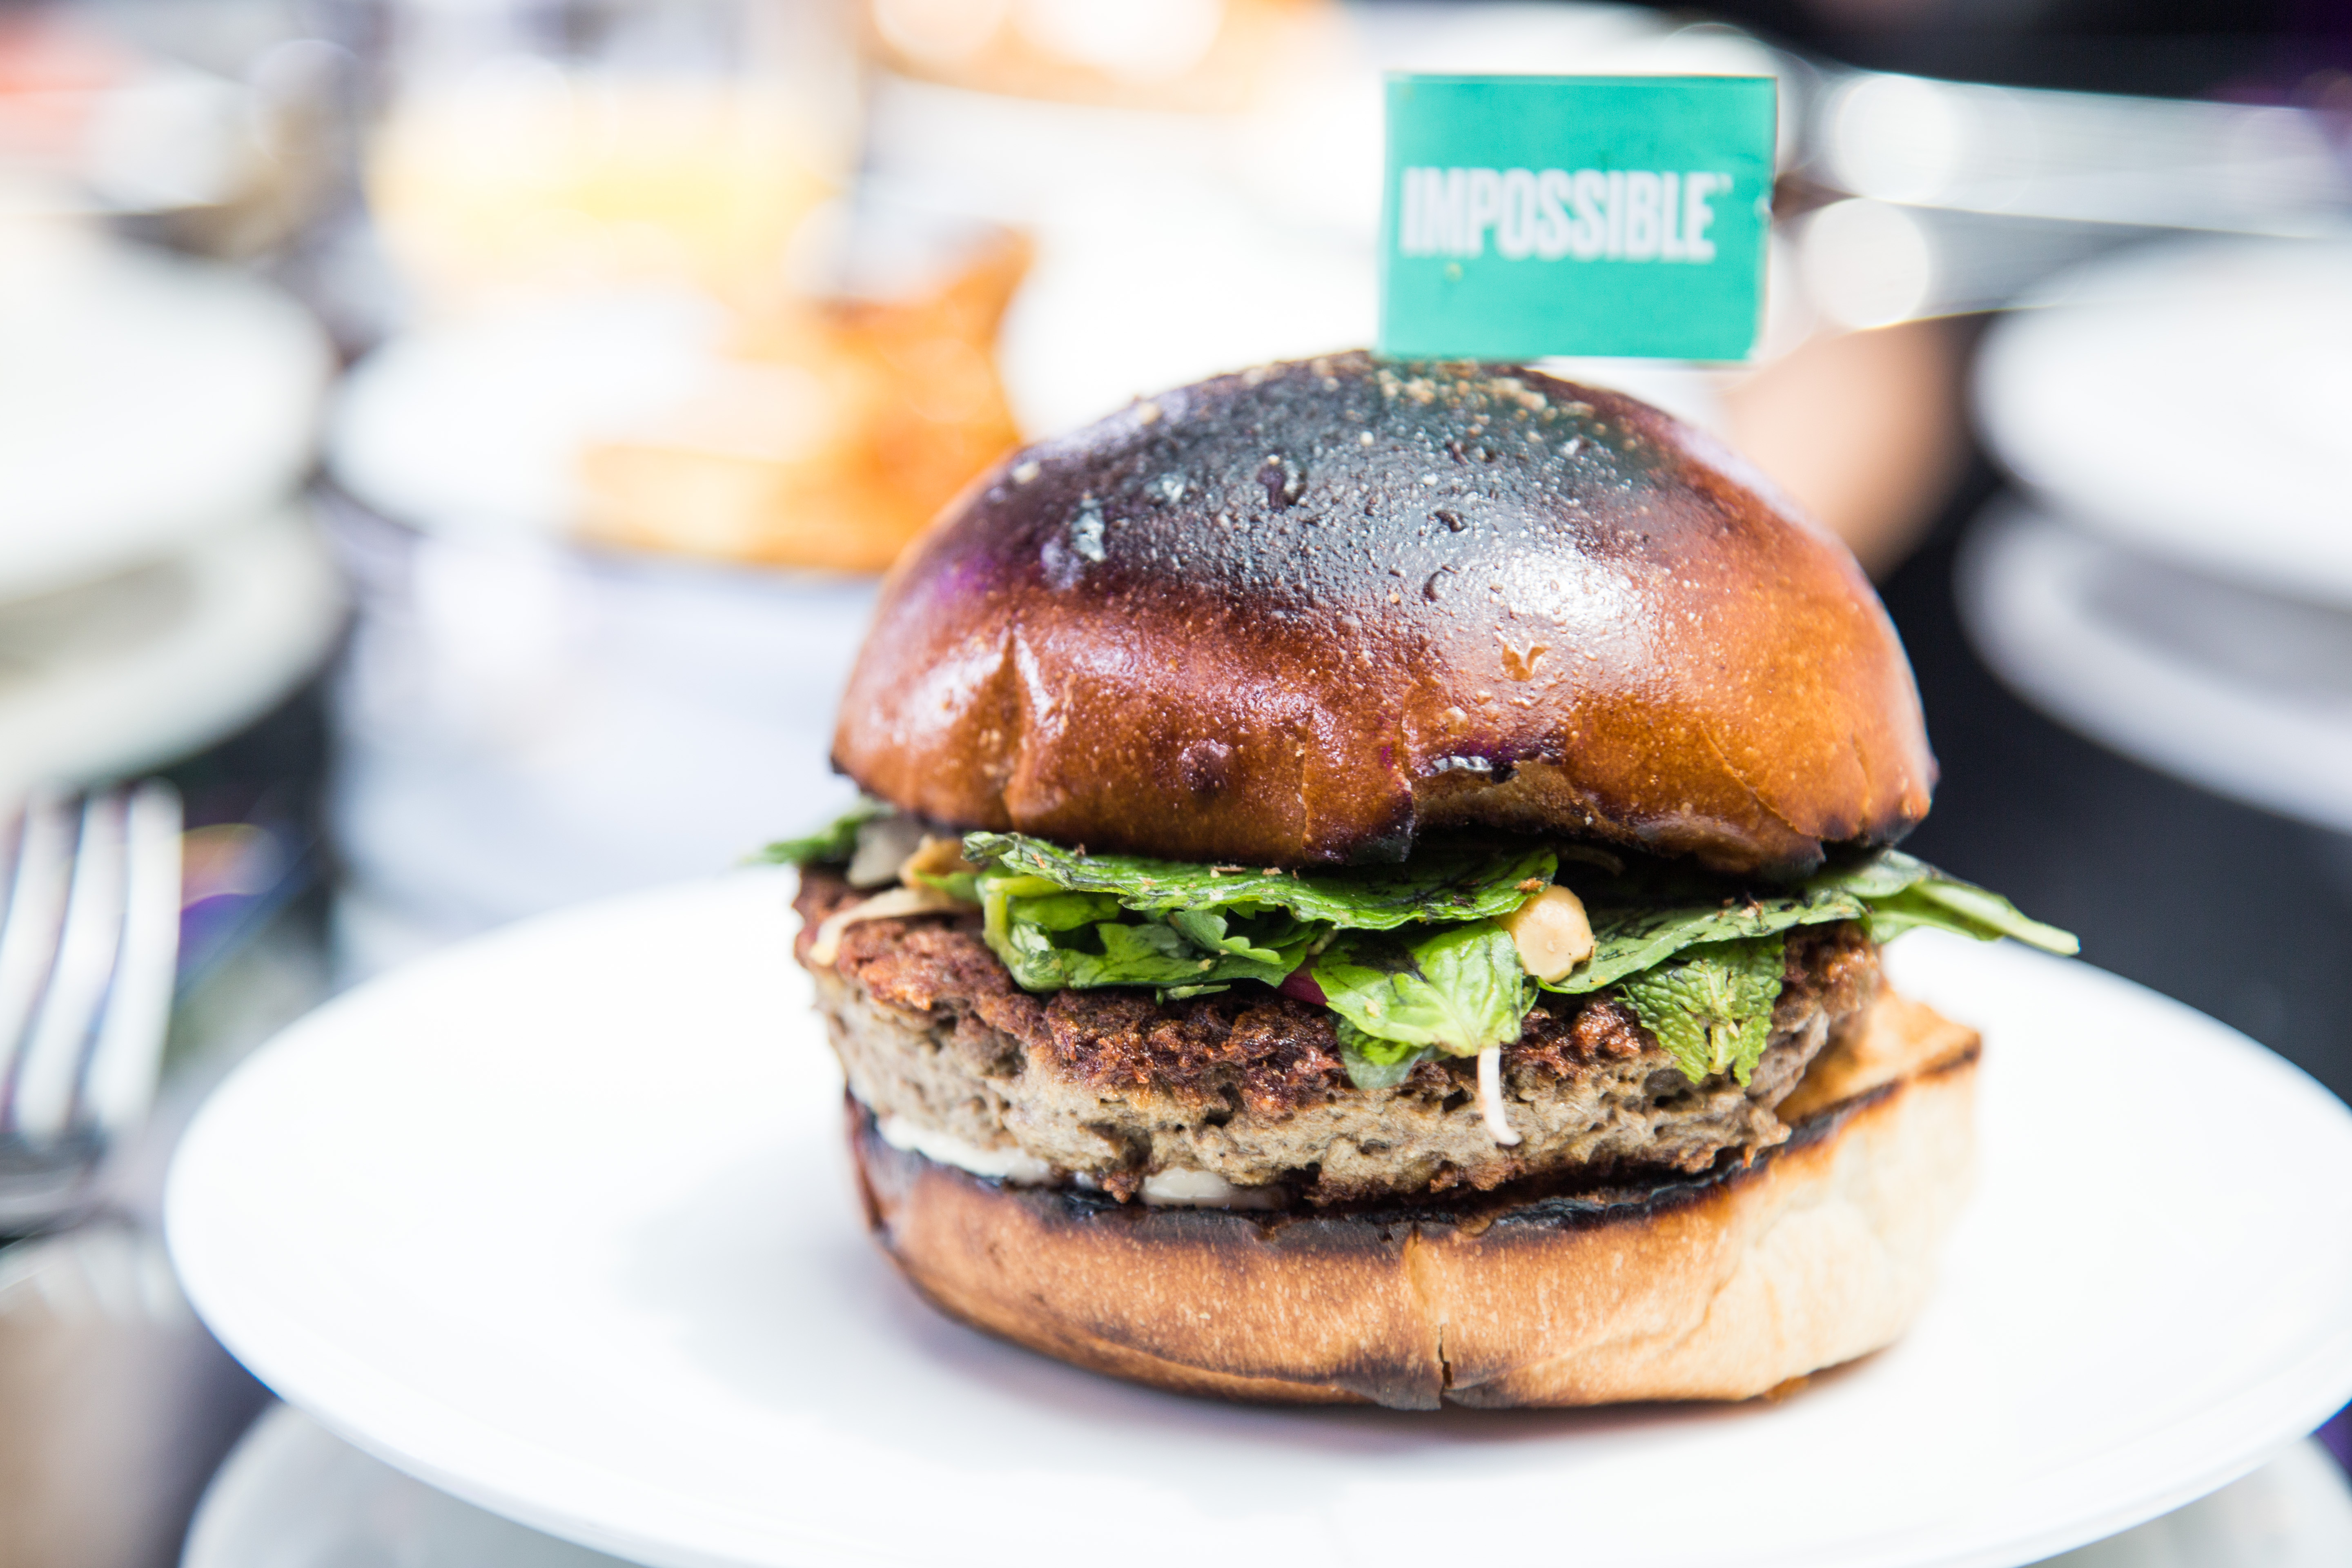 Meet the Founder of Impossible Foods, Whose Meat-Free Burgers Could Transform the Way We Eat